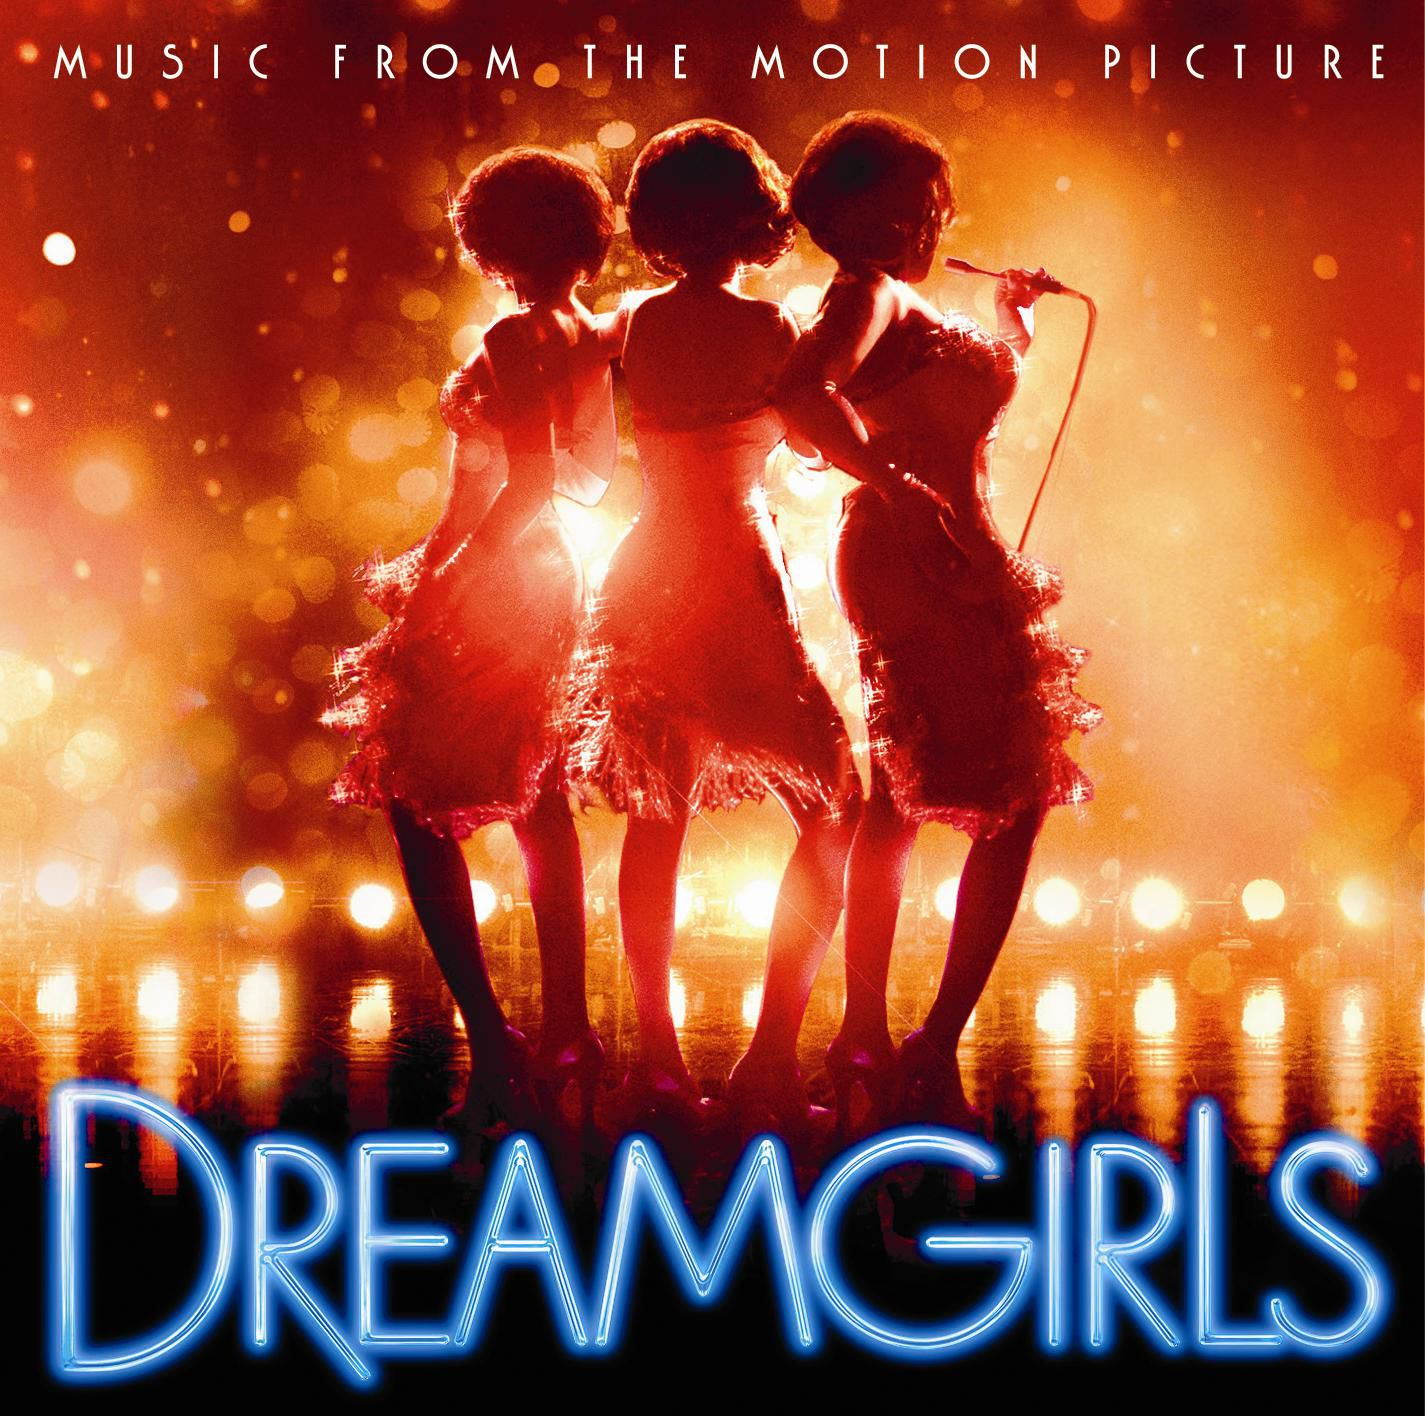 Who Sings What on the Dreamgirls Movie Soundtrack